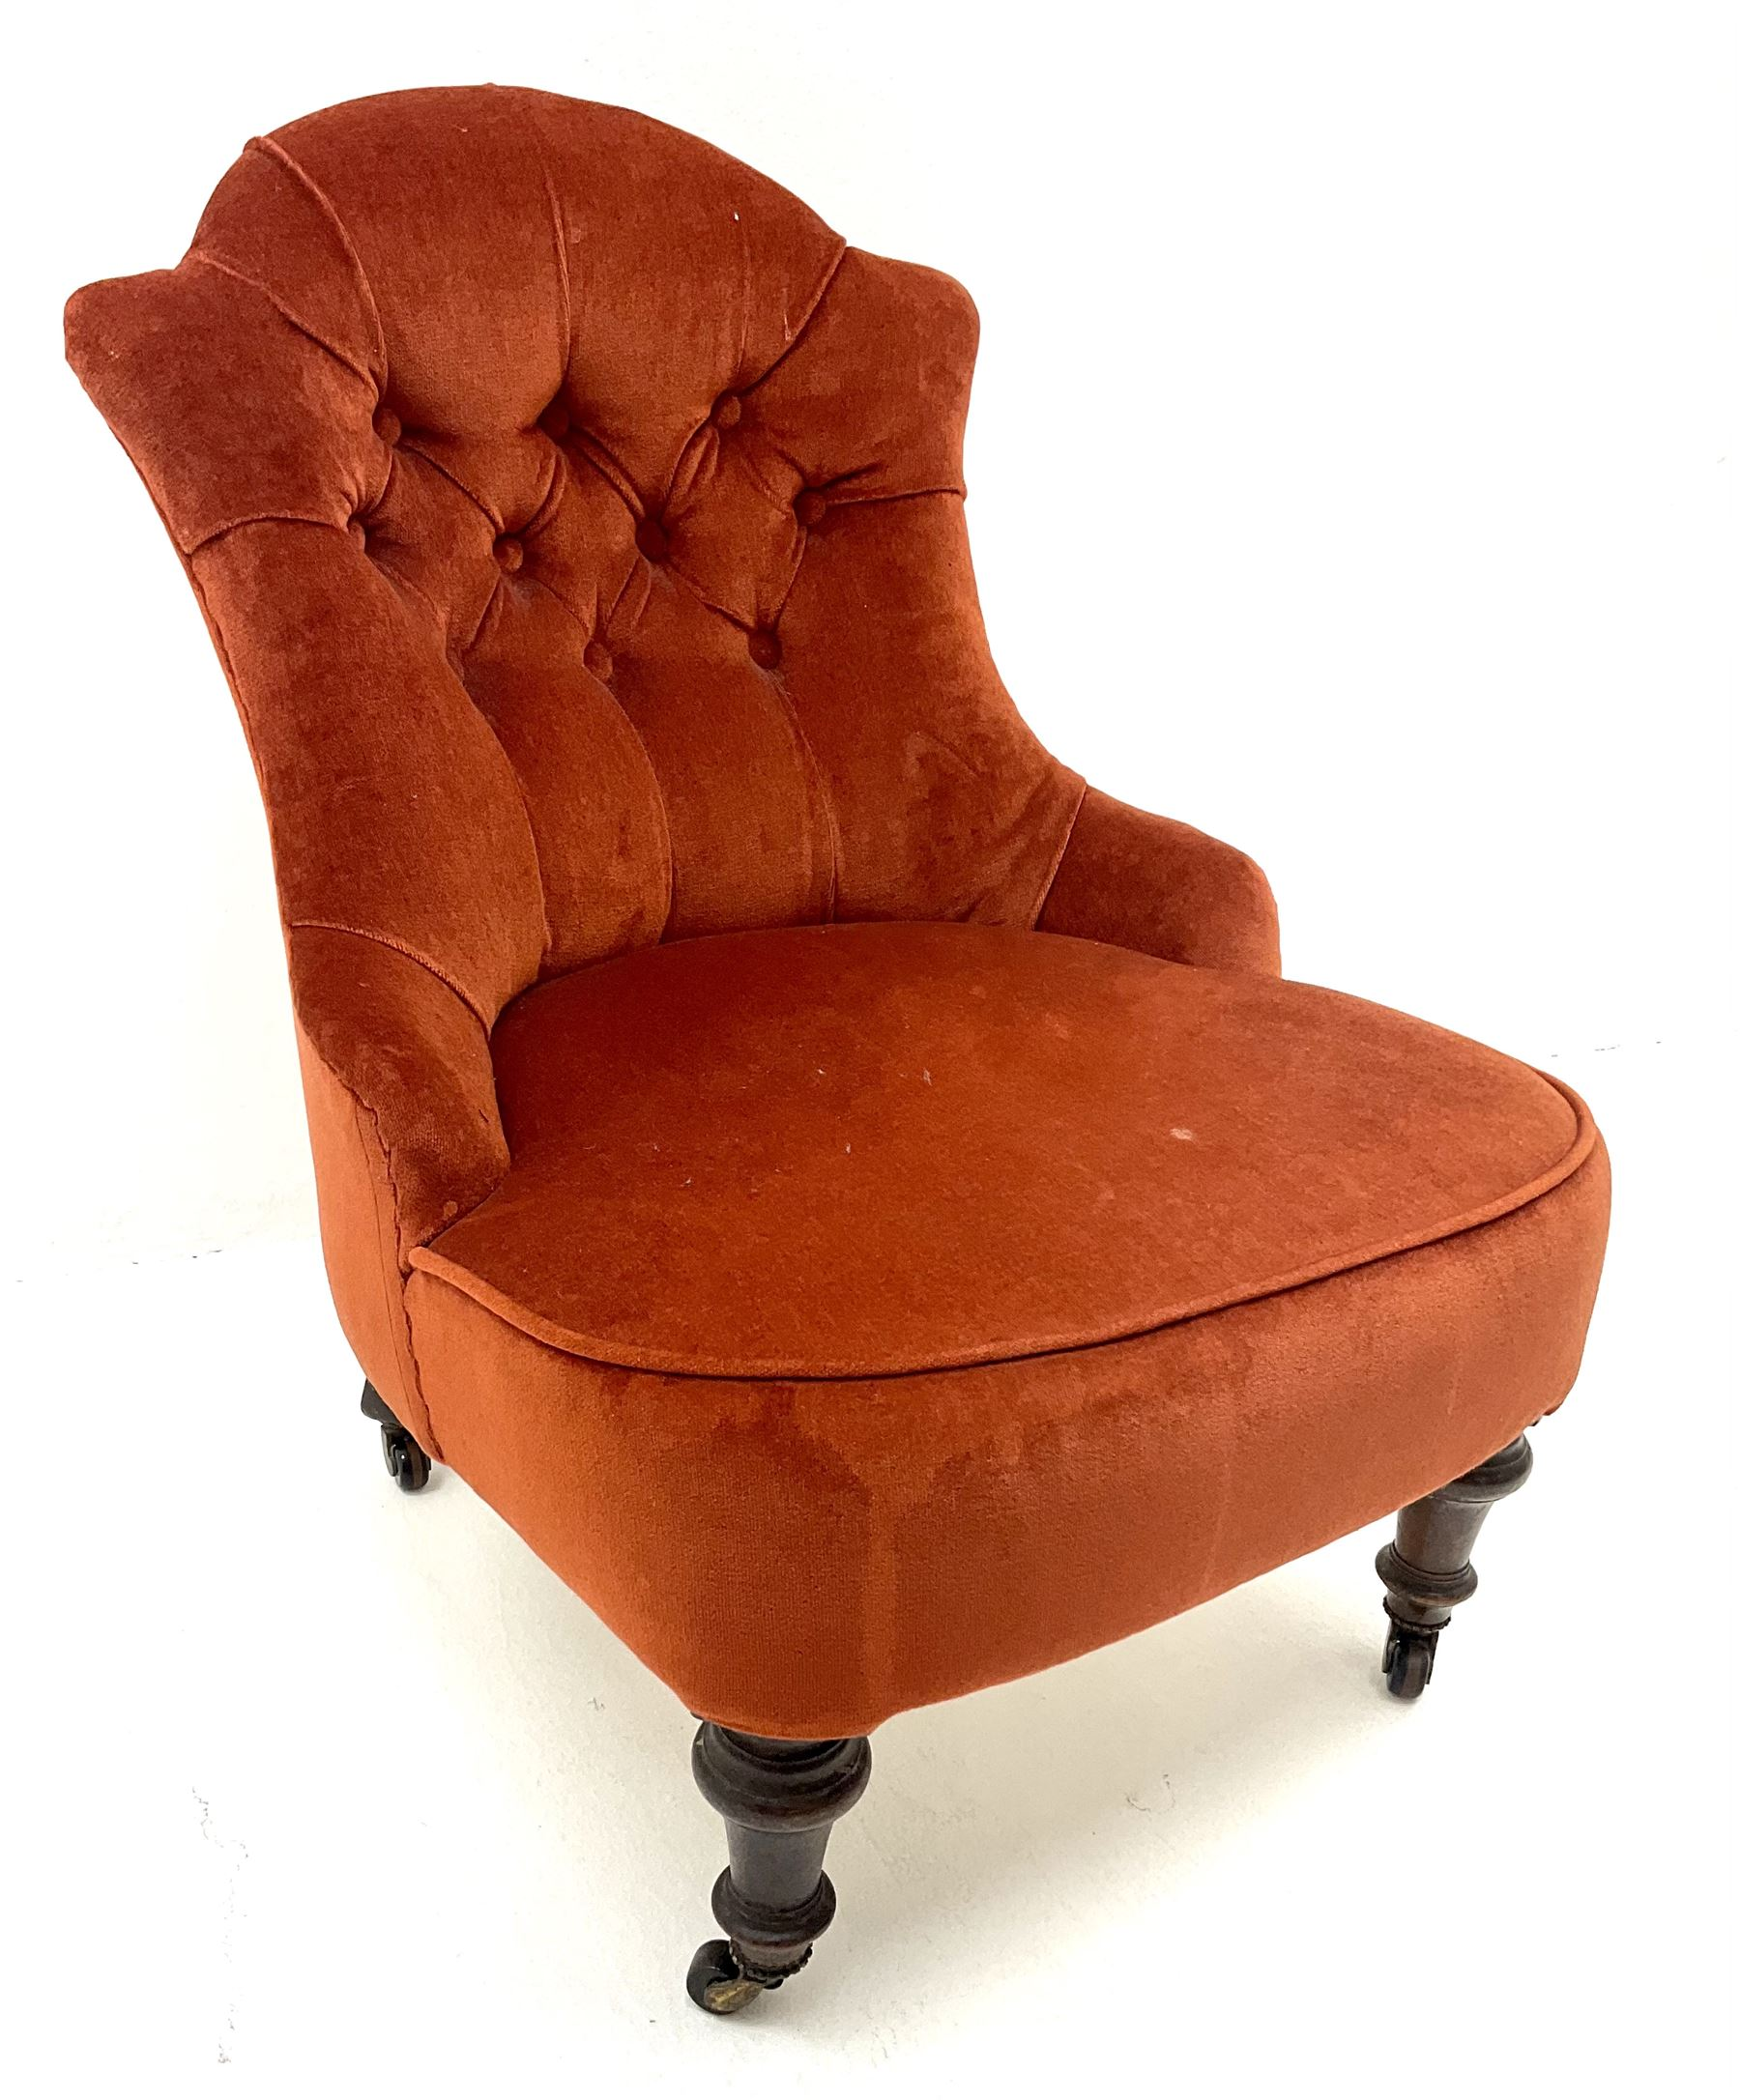 Victorian nursing chair upholstered in a buttoned terracotta fabric - Image 3 of 3